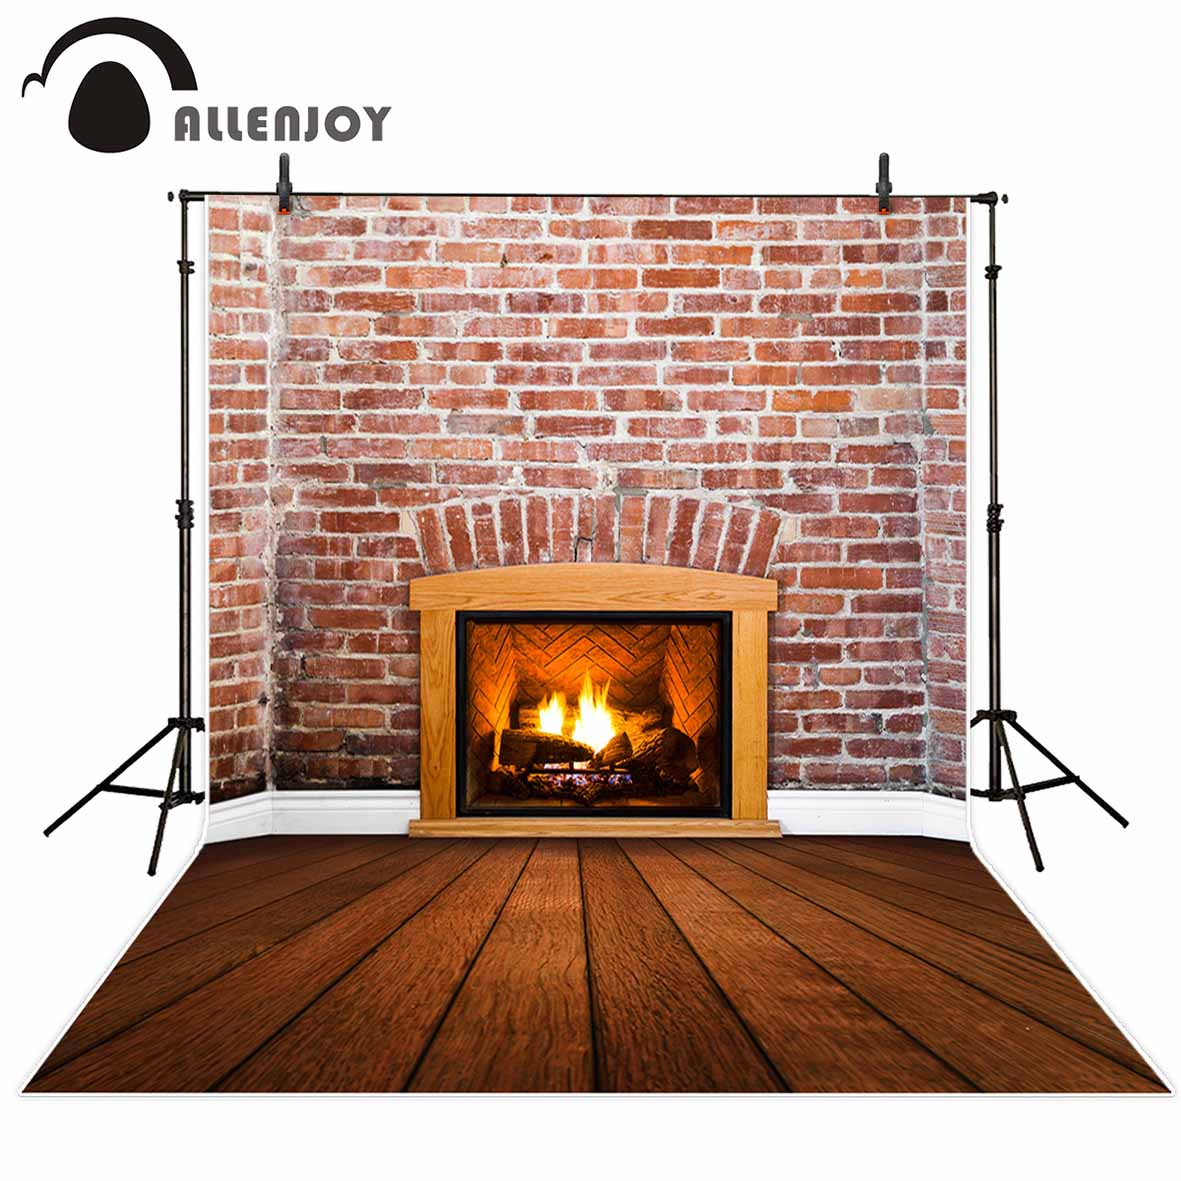 Allenjoy photography background Fireplace Brick Wall Wooden Floor Interior Christmas backdrop photo background studio allenjoy christmas photography backdrop wooden fireplace xmas sock gift children s photocall photographic customize festive